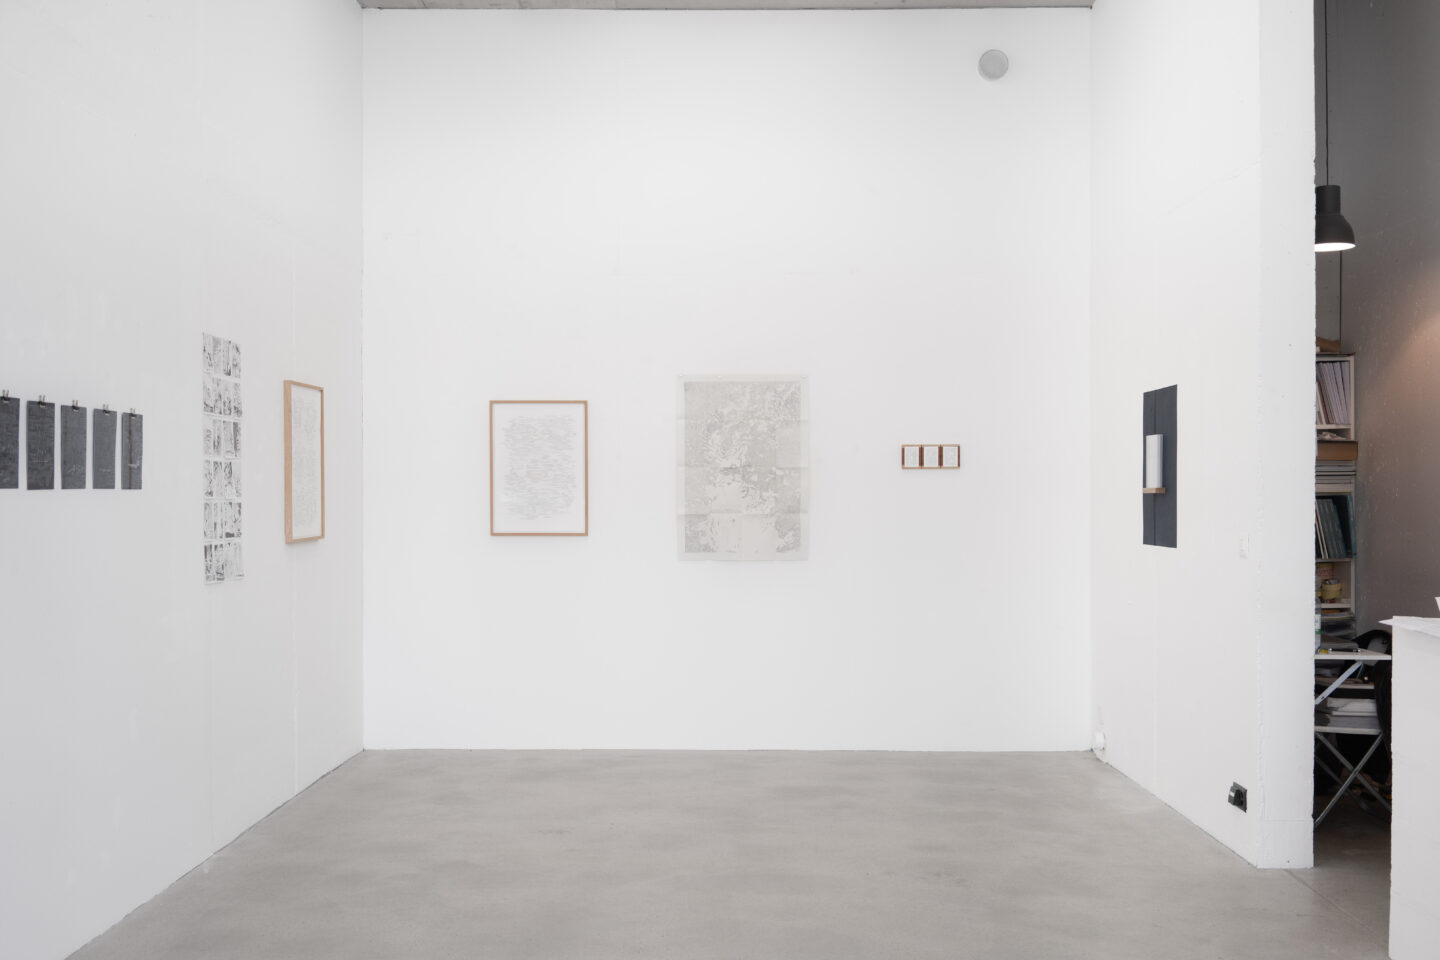 Exhibition View Nathalie Perrin Soloshow «The fragility of warm-blooded creatures» at Galerie Heinzer Reszler, Lausanne, 2019 / Courtesy: the artist and Heinzer Reszler